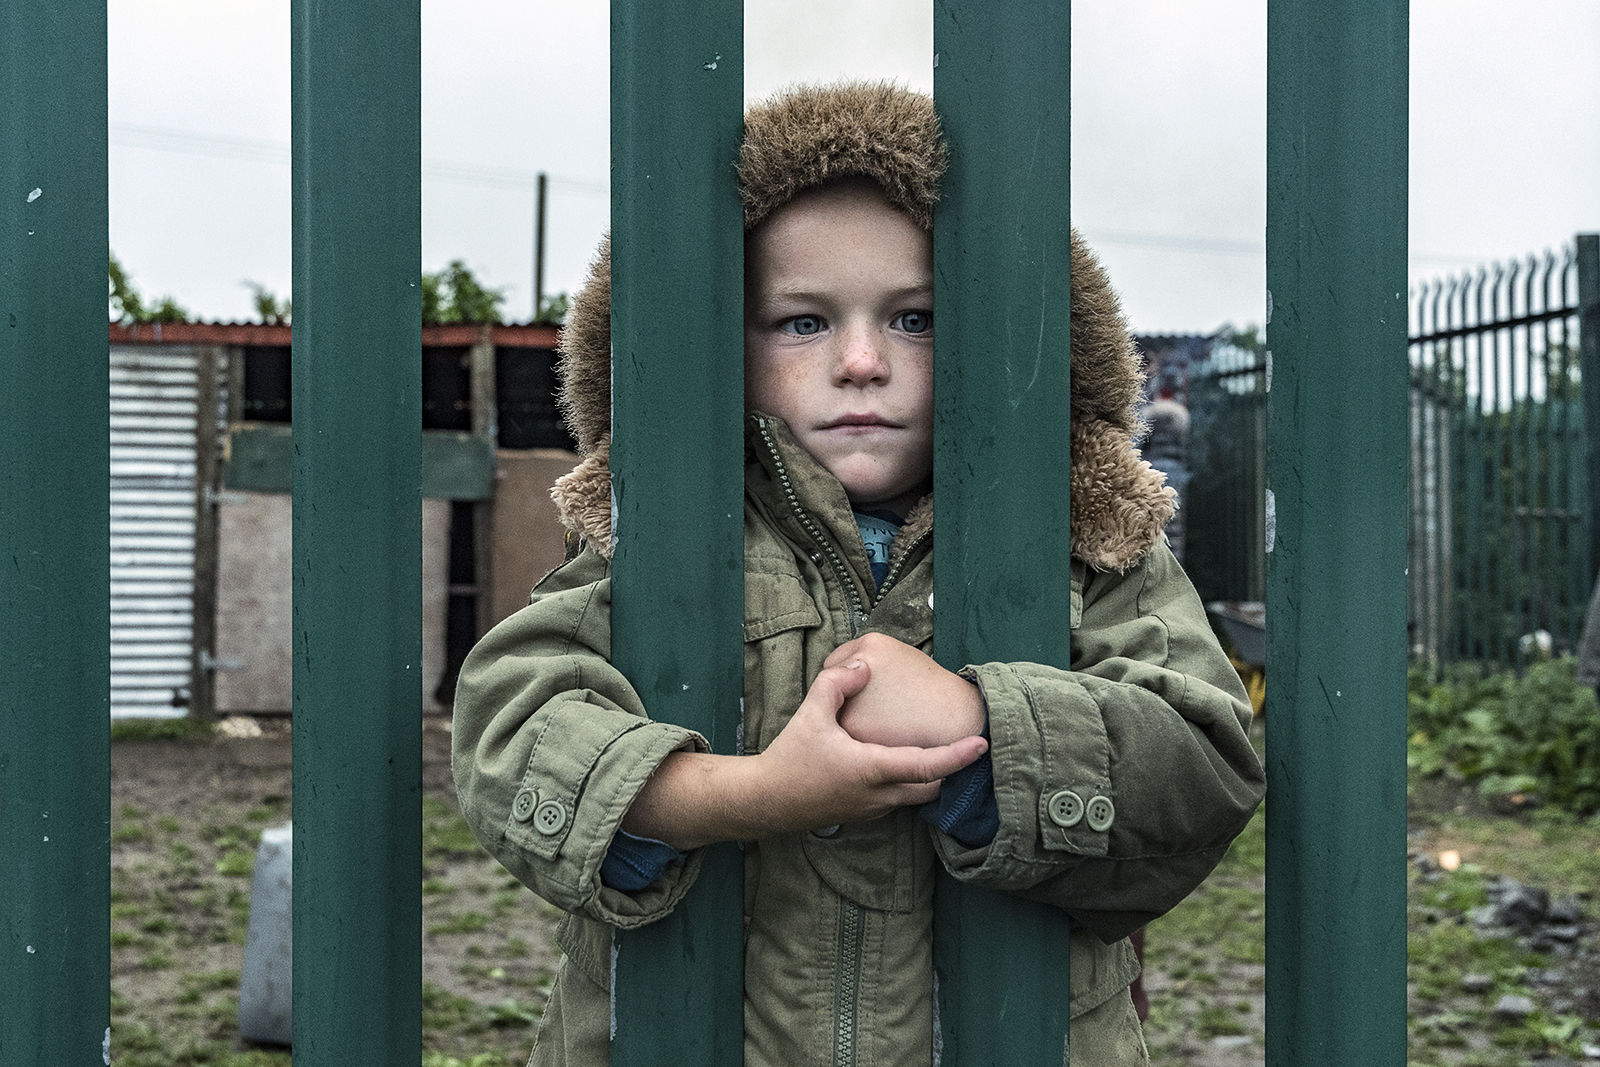 Michael behind Fence, Tipperary, Ireland 2019